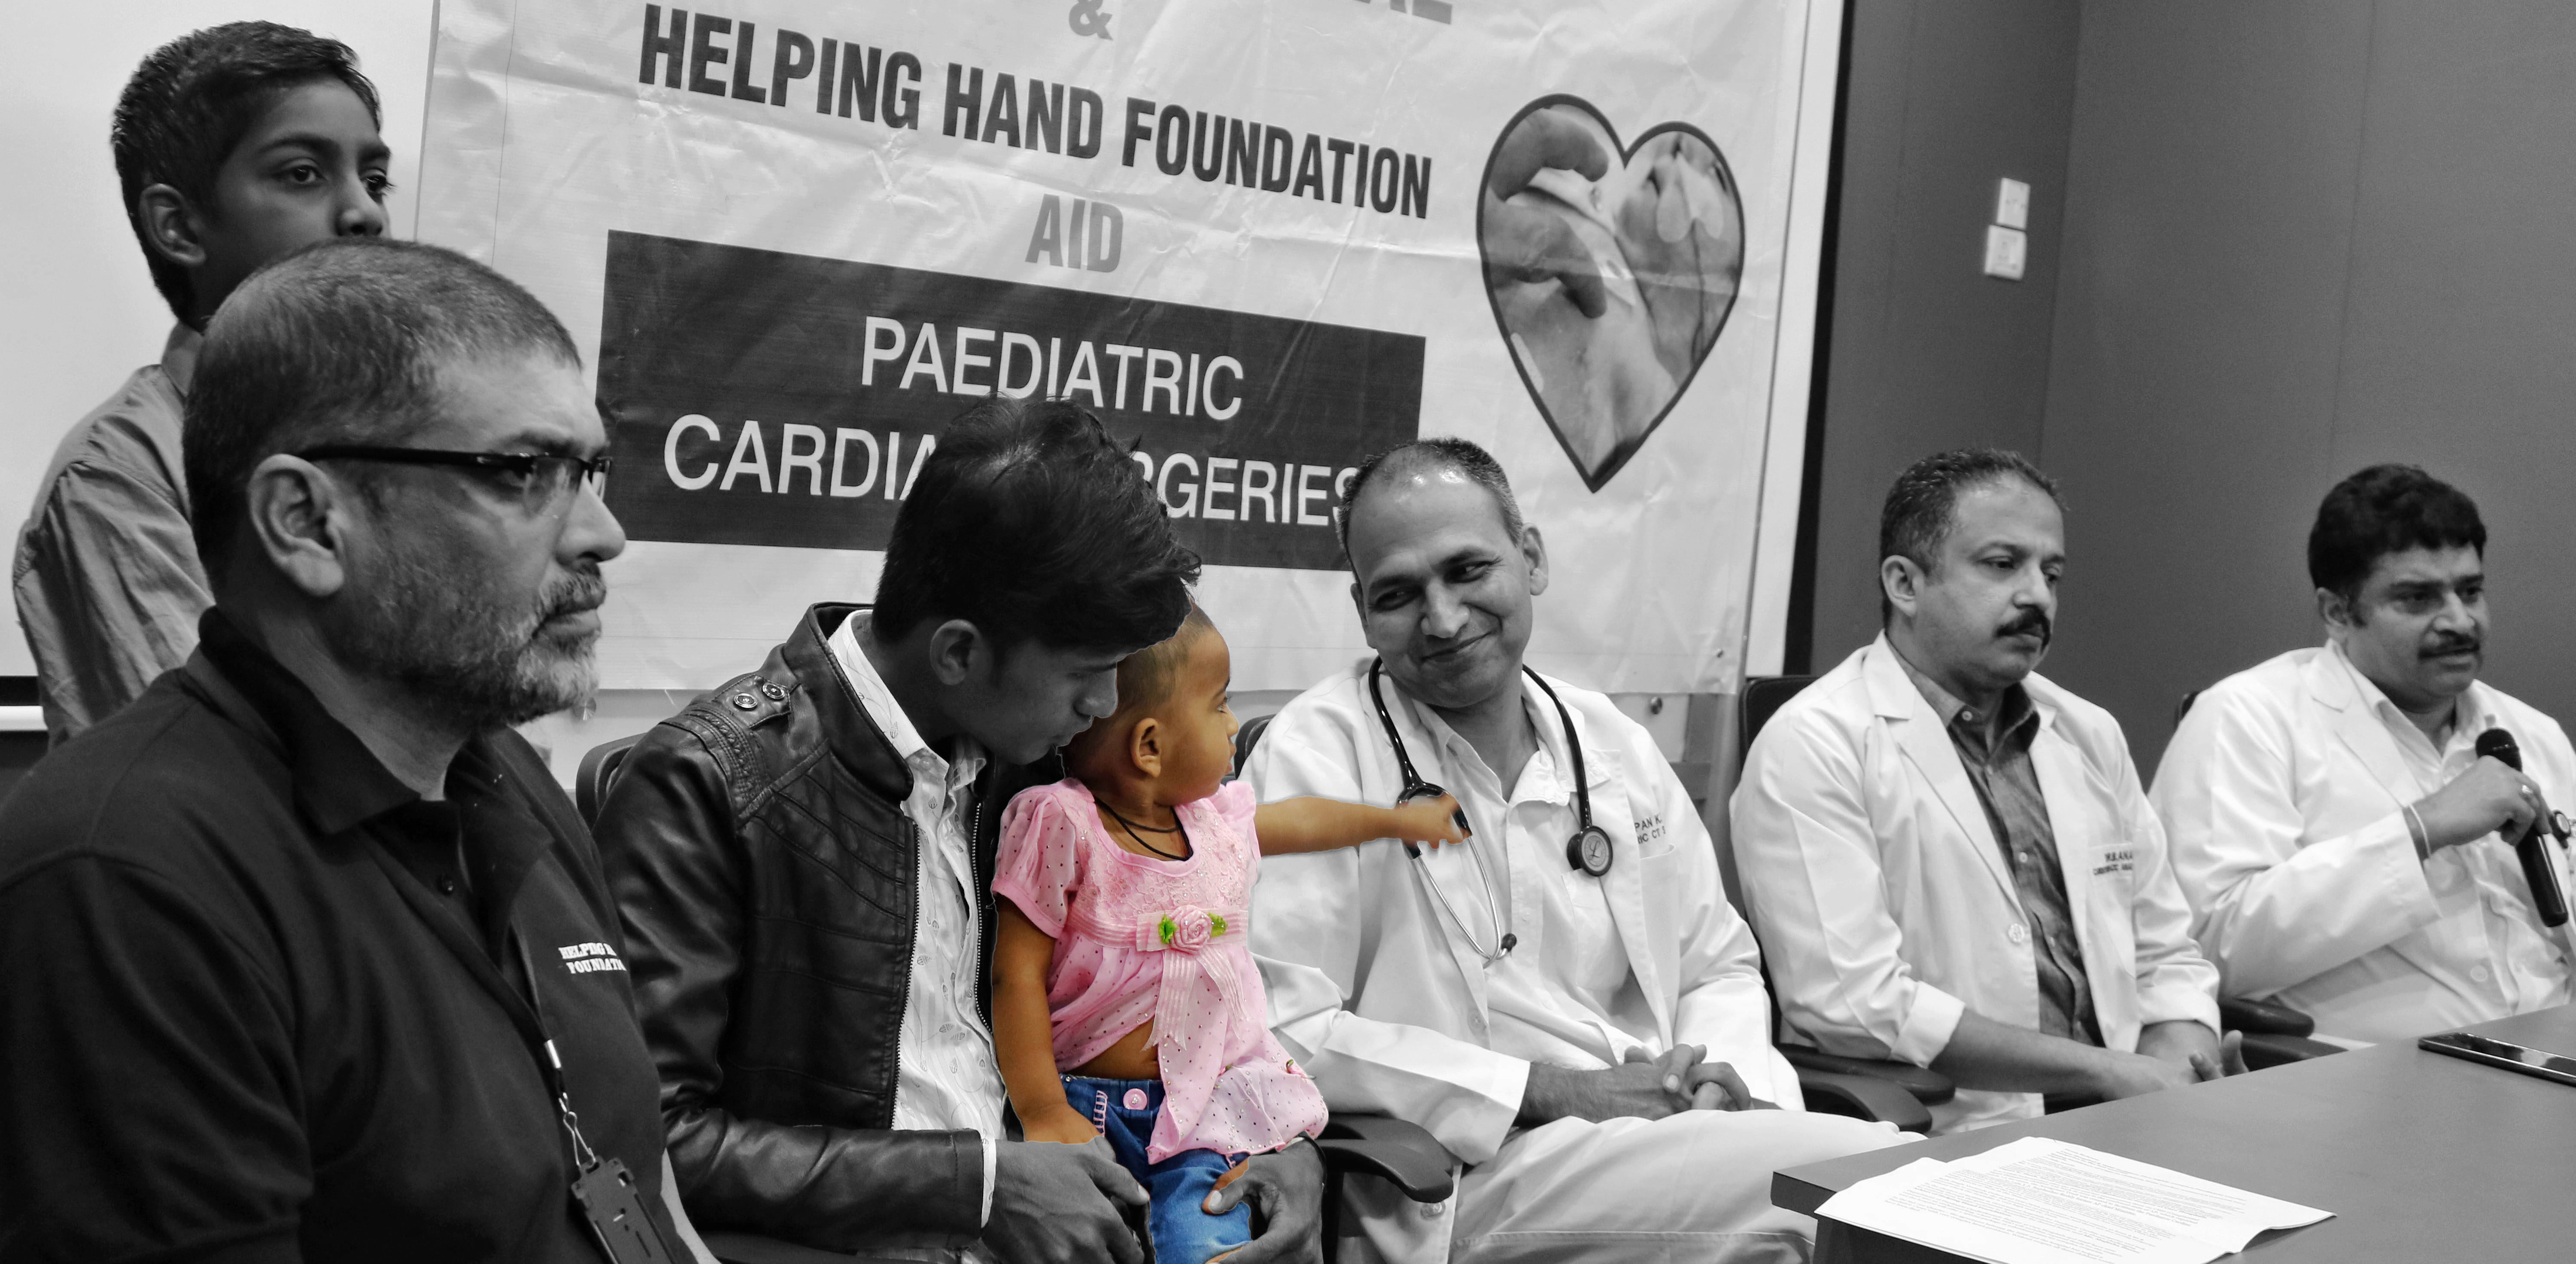 Healthcare NGO Helping Hand Foundation has tied up with Care Hospital, Banjara Hills to support subsidised pediatric cardiac surgeries in cases involving families from poor economic background.